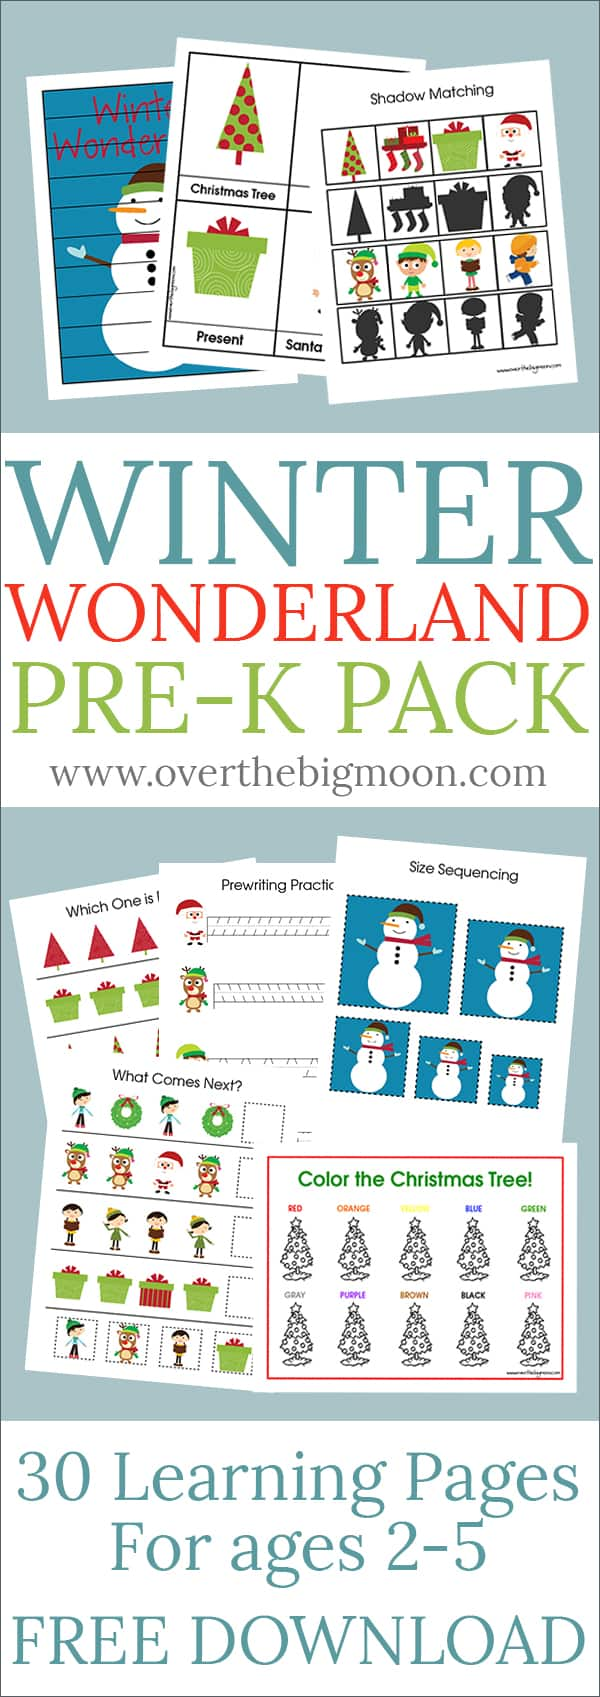 FREE Winter Wonderland Pre-K Pack - this Pre-K Pack brings all things Christmas to it! From www.overthebigmoon.com!